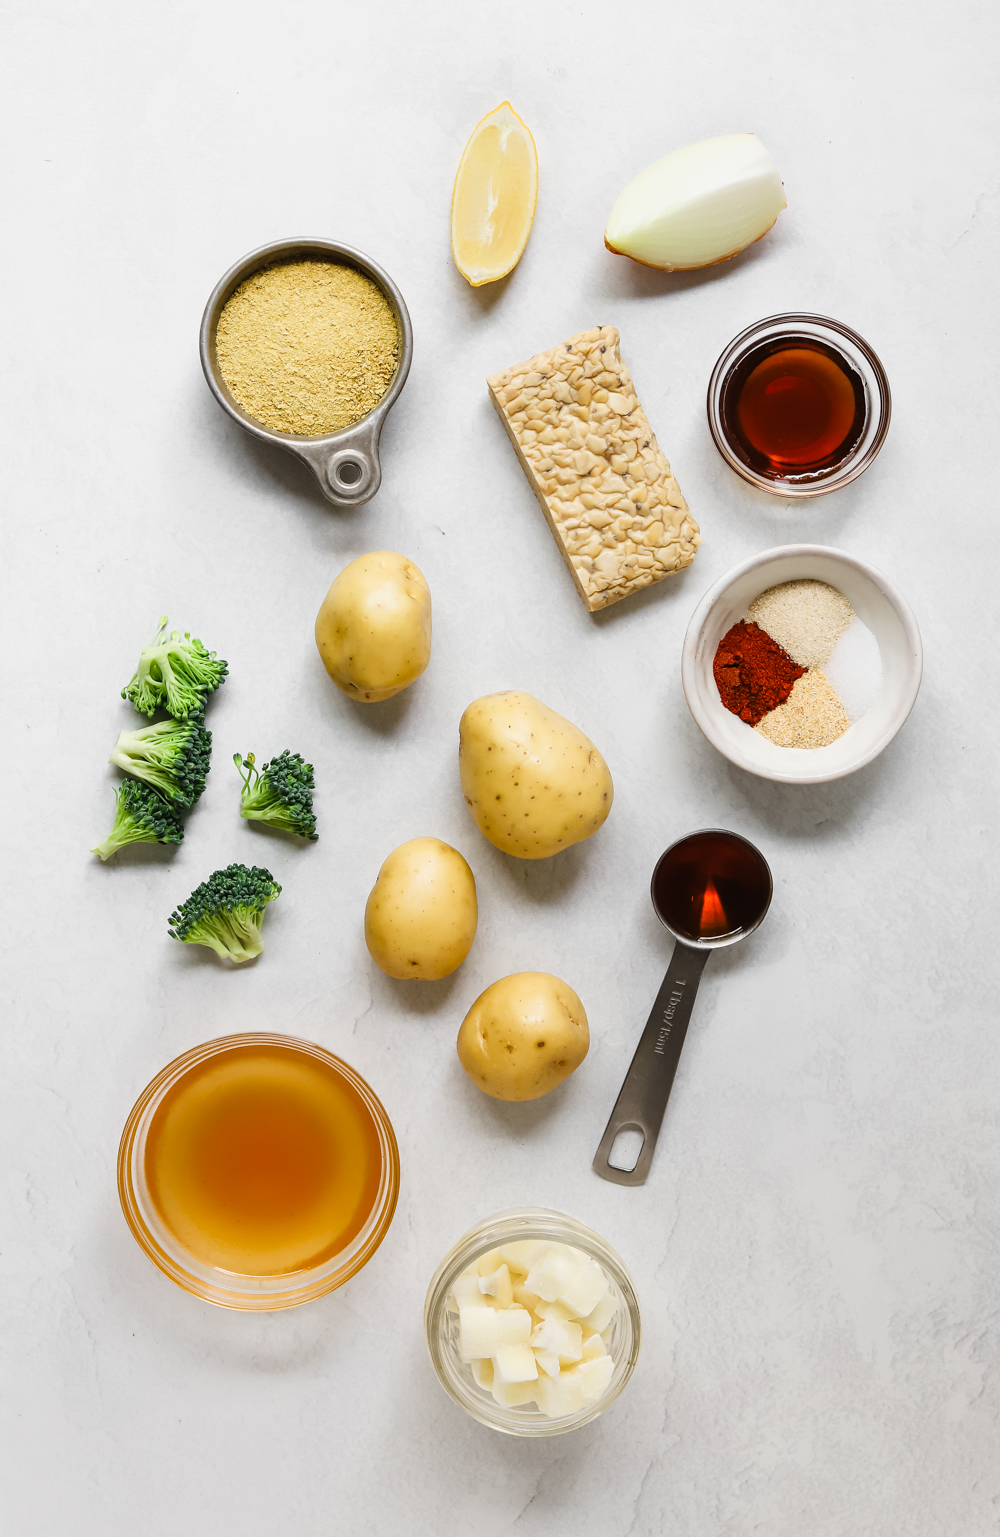 Ingredients to make a vegan potato broccoli casserole with tempeh sausage crumbles: potatoes, diced potatoes, broccoli, tempeh, vegetable broth, maple syrup, liquid smoke, onion, lemon juice, and spices.